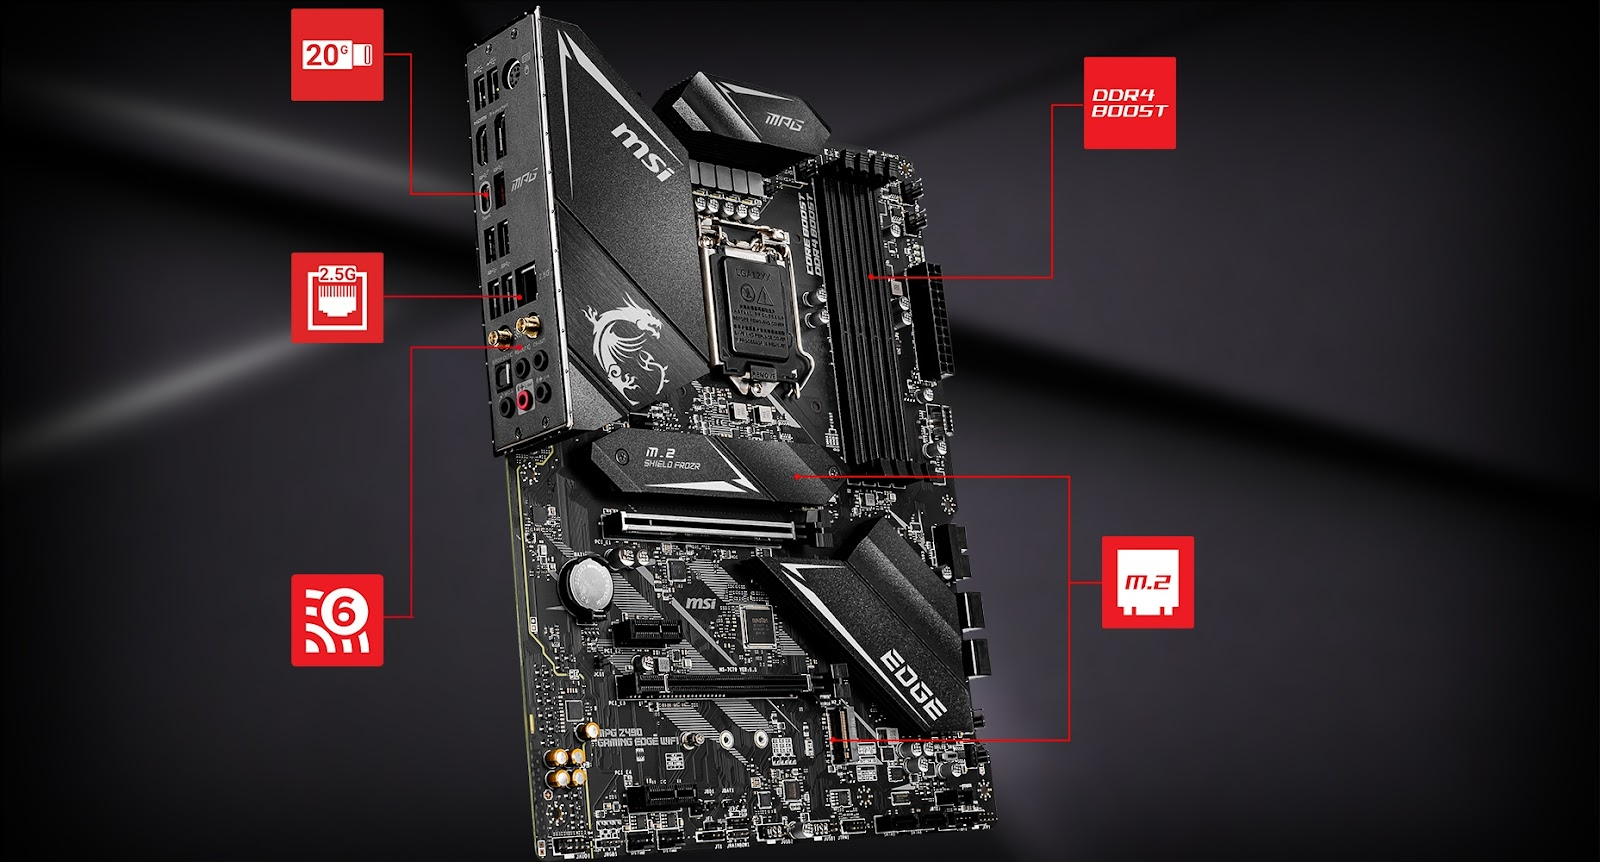 Creator TRX40 motherboard and a video card